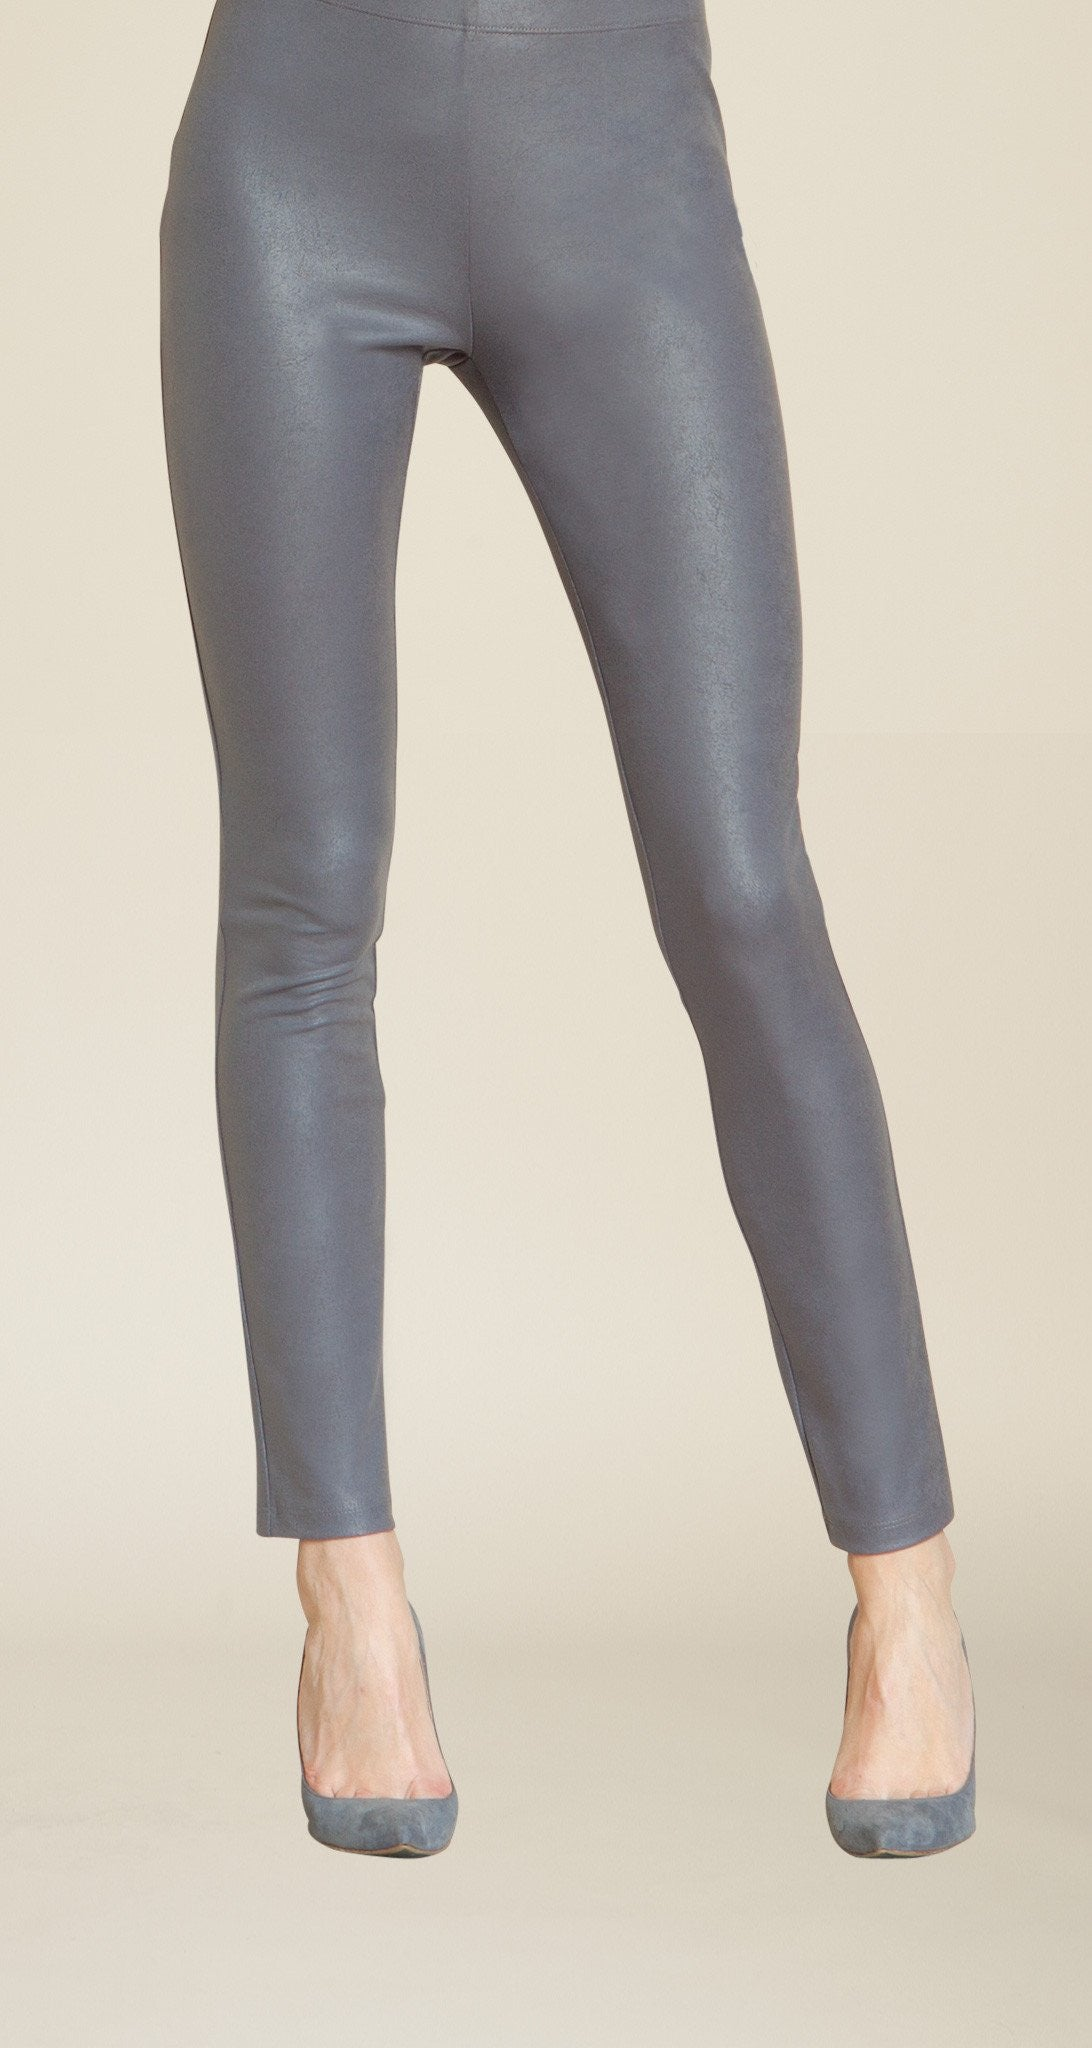 Liquid Leather Legging - Clara Sunwoo